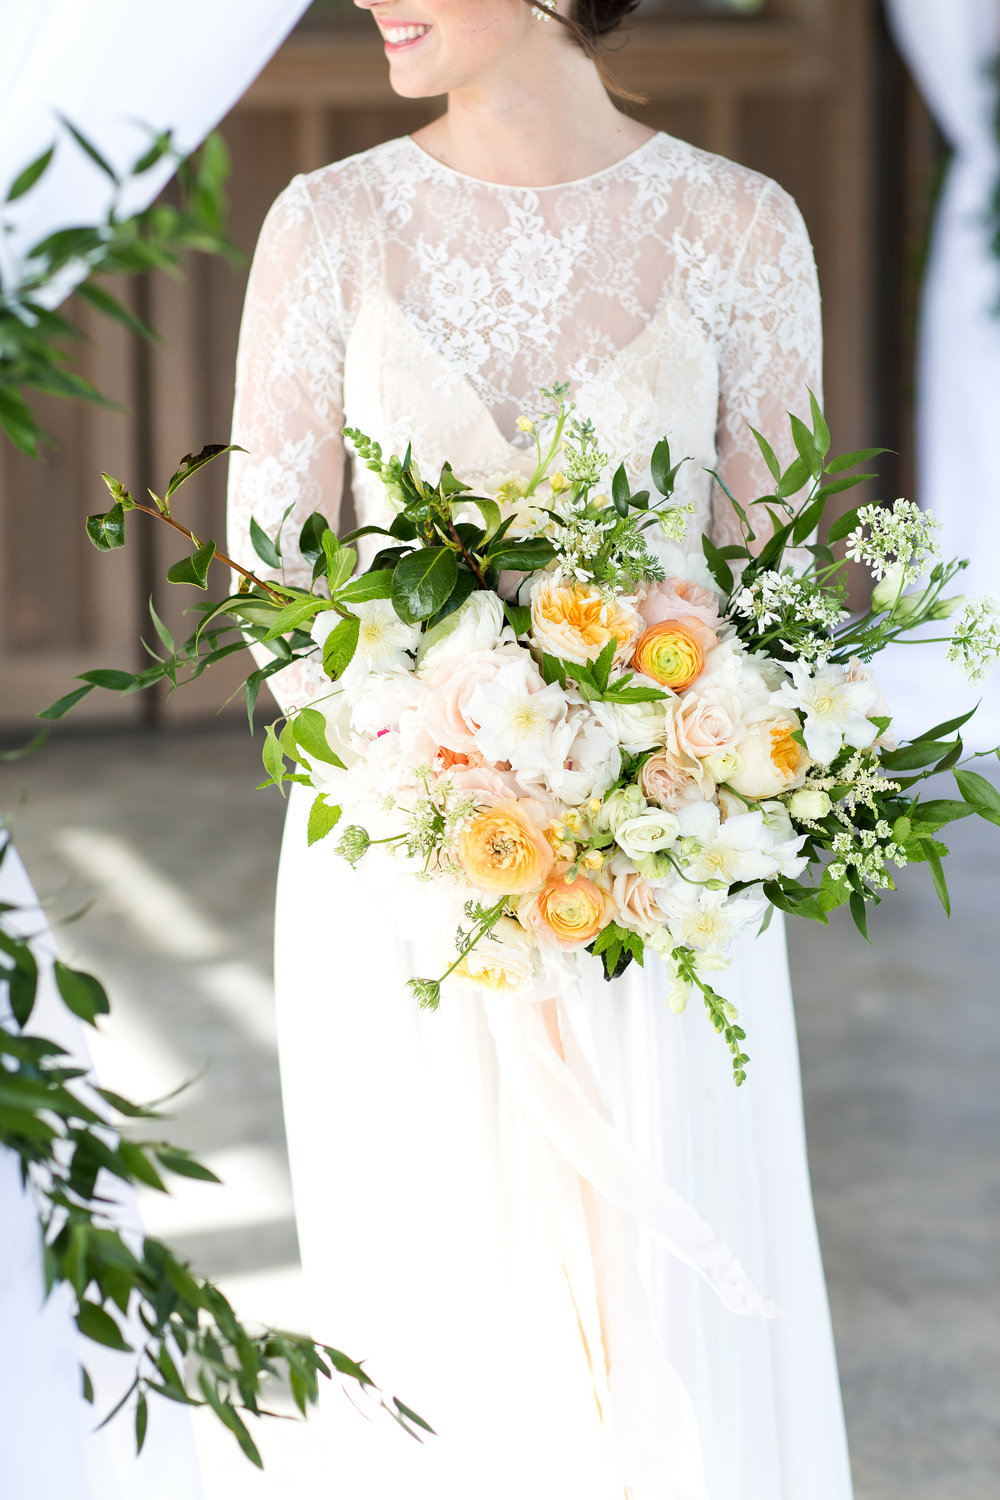 Wispy Garden Bouquet  Style: rustic, wispy, organic Details: ranunculus, lisianthus, stock, clematis, peonies, Juliet garden roses, full greenery   {Photo courtesy of  Melissa and Beth }